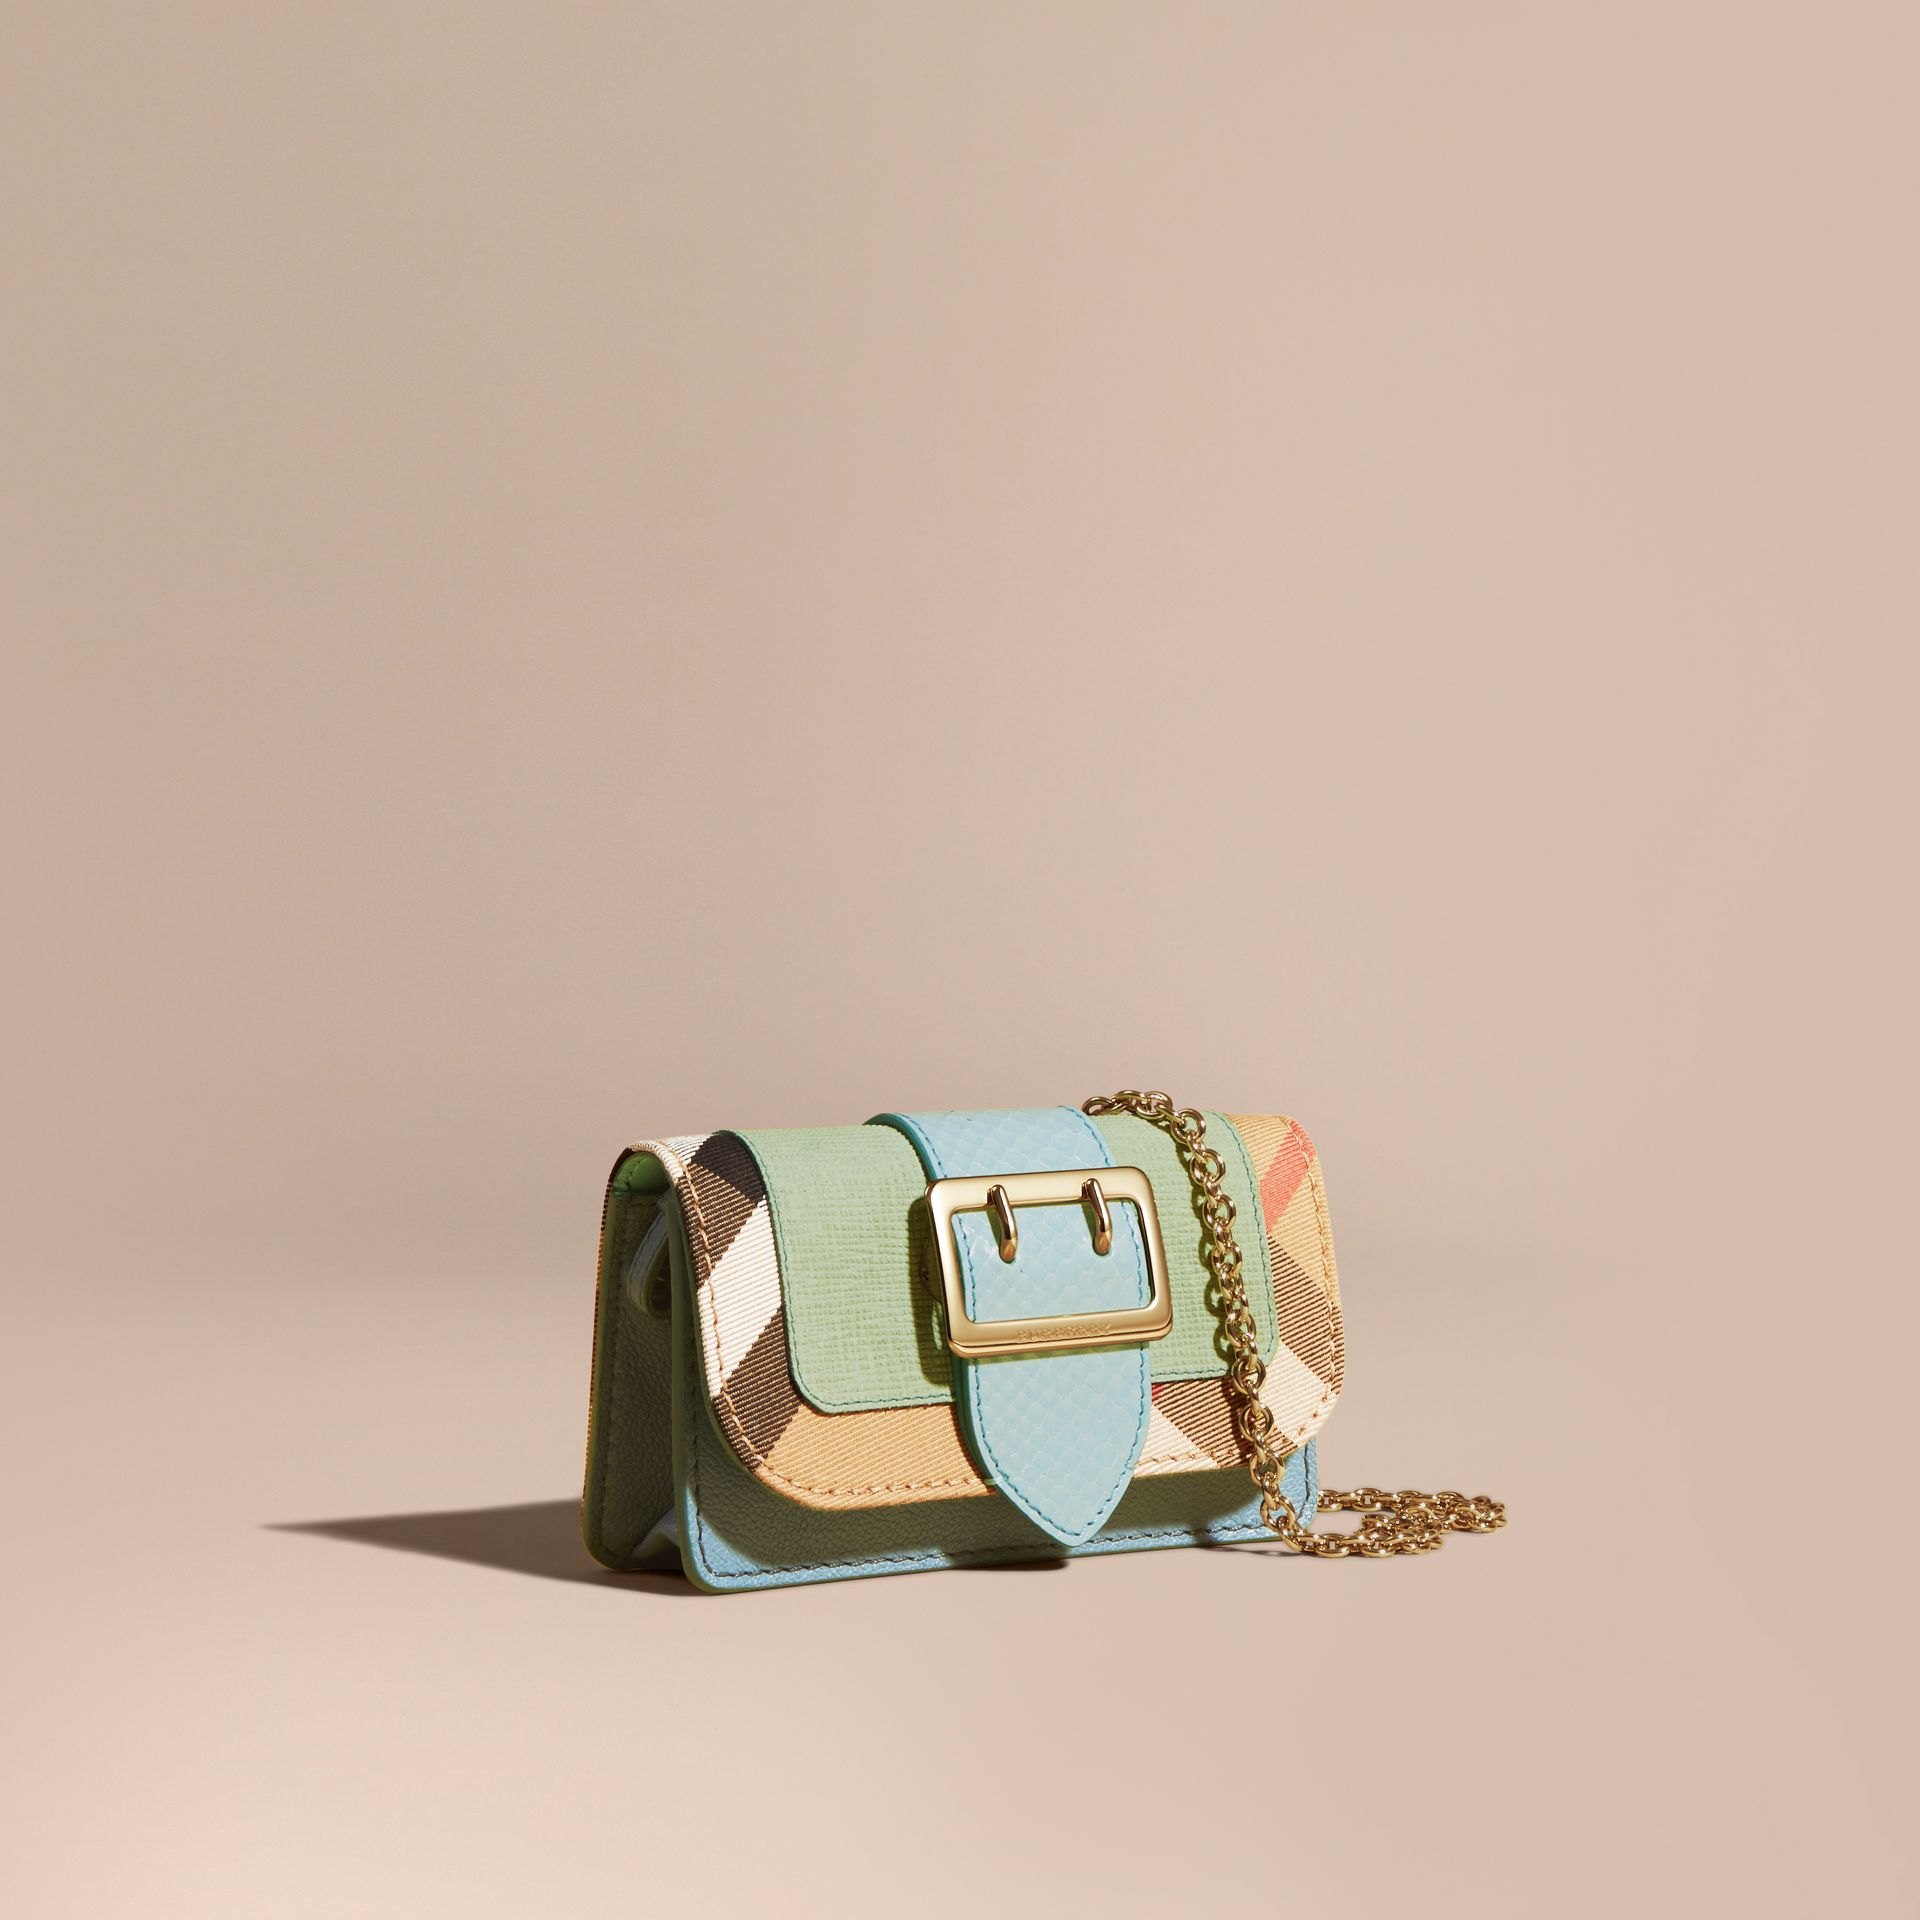 Menta chiaro Borsa The Buckle mini con pelle di serpente e motivo House check - immagine della galleria 1